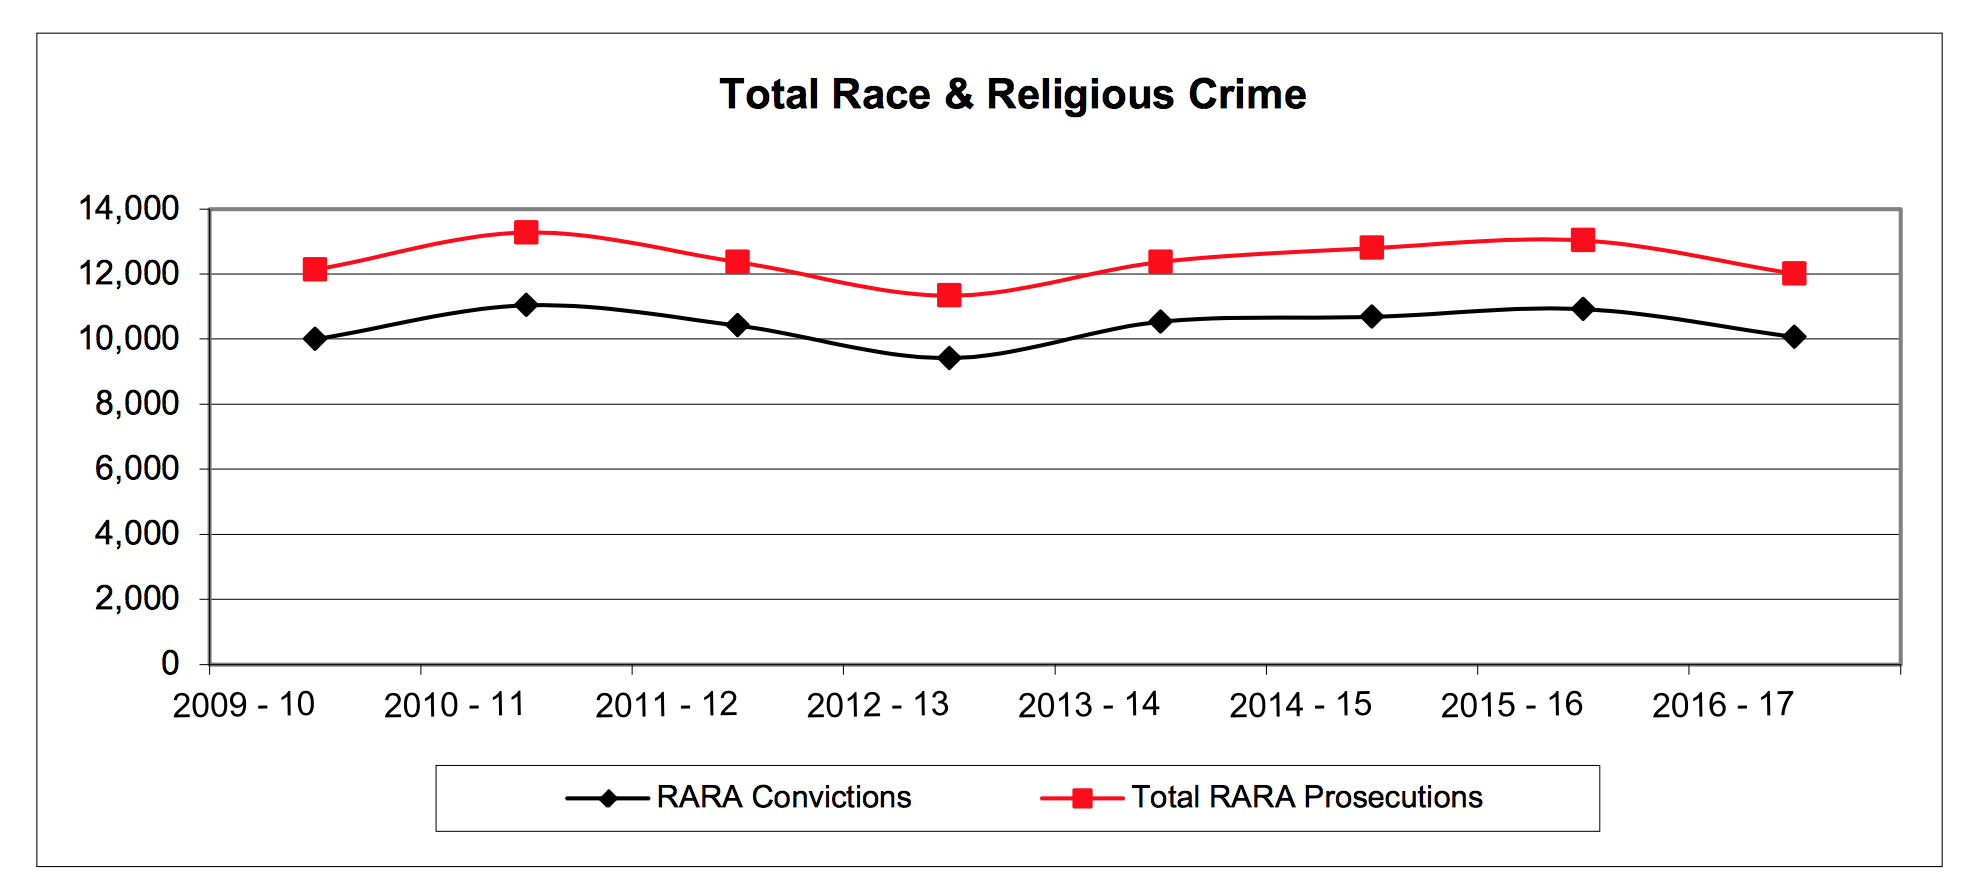 Total Hate Crime (Racial/Religious) Prosecutions and Convictions. Source: CPS, Oct 2017.